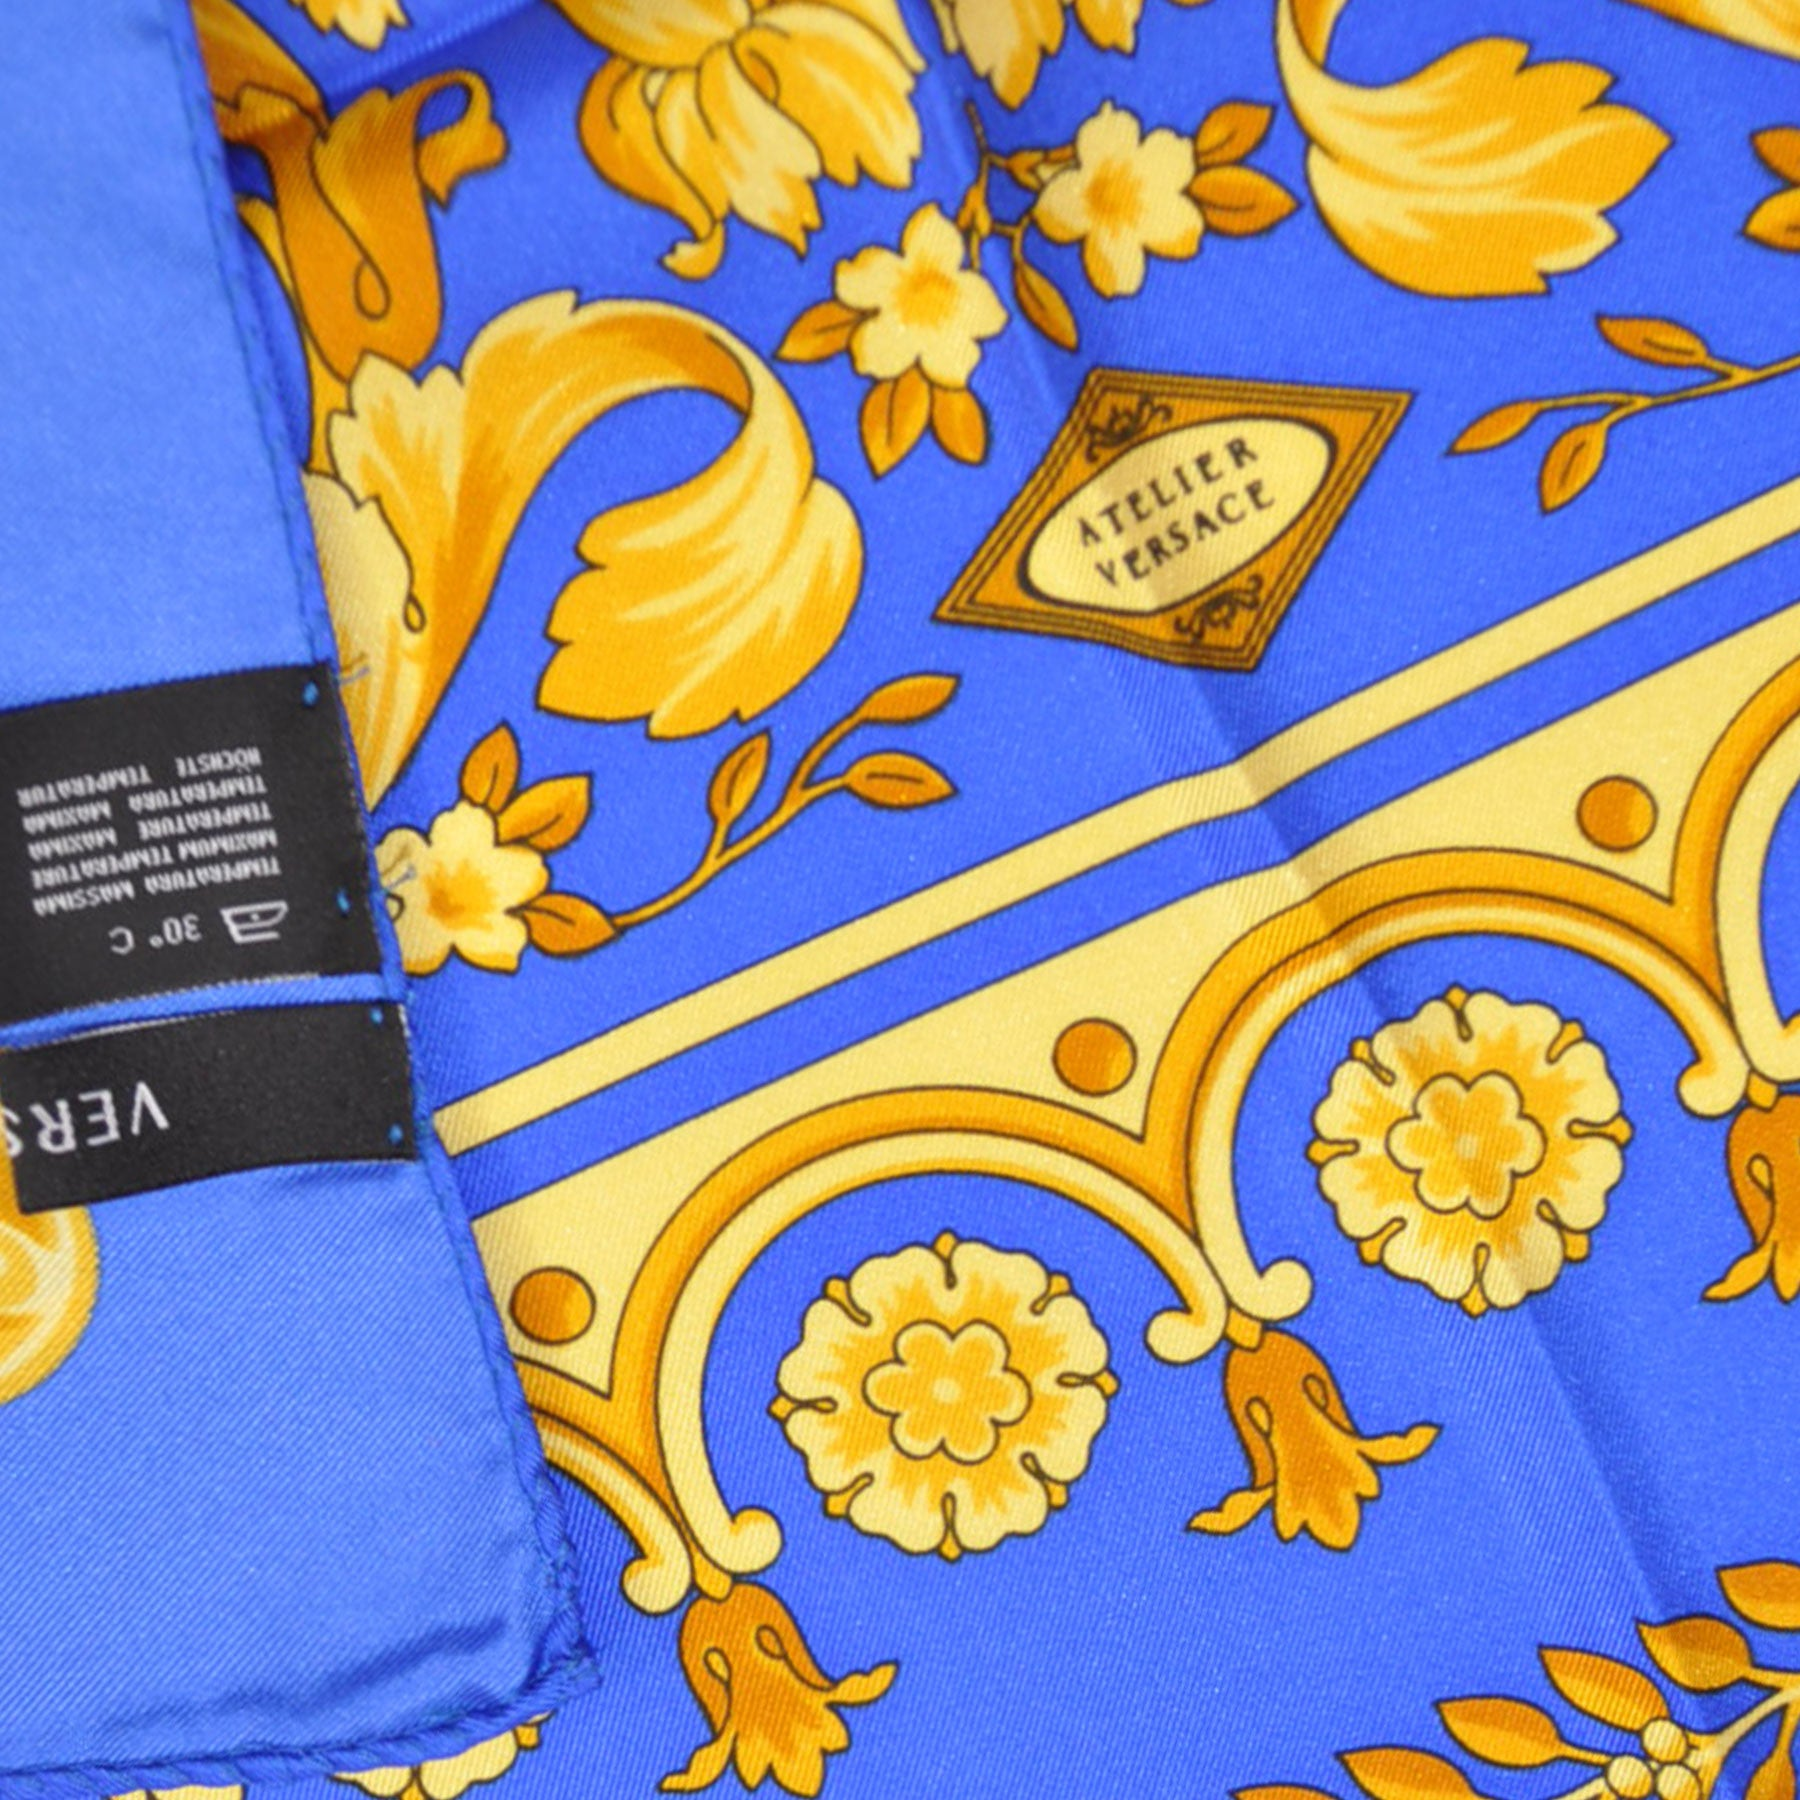 6d67a6ed Versace Scarf Royal Blue Gold Baroque Floral - Large Twill Silk Square  Scarf SALE